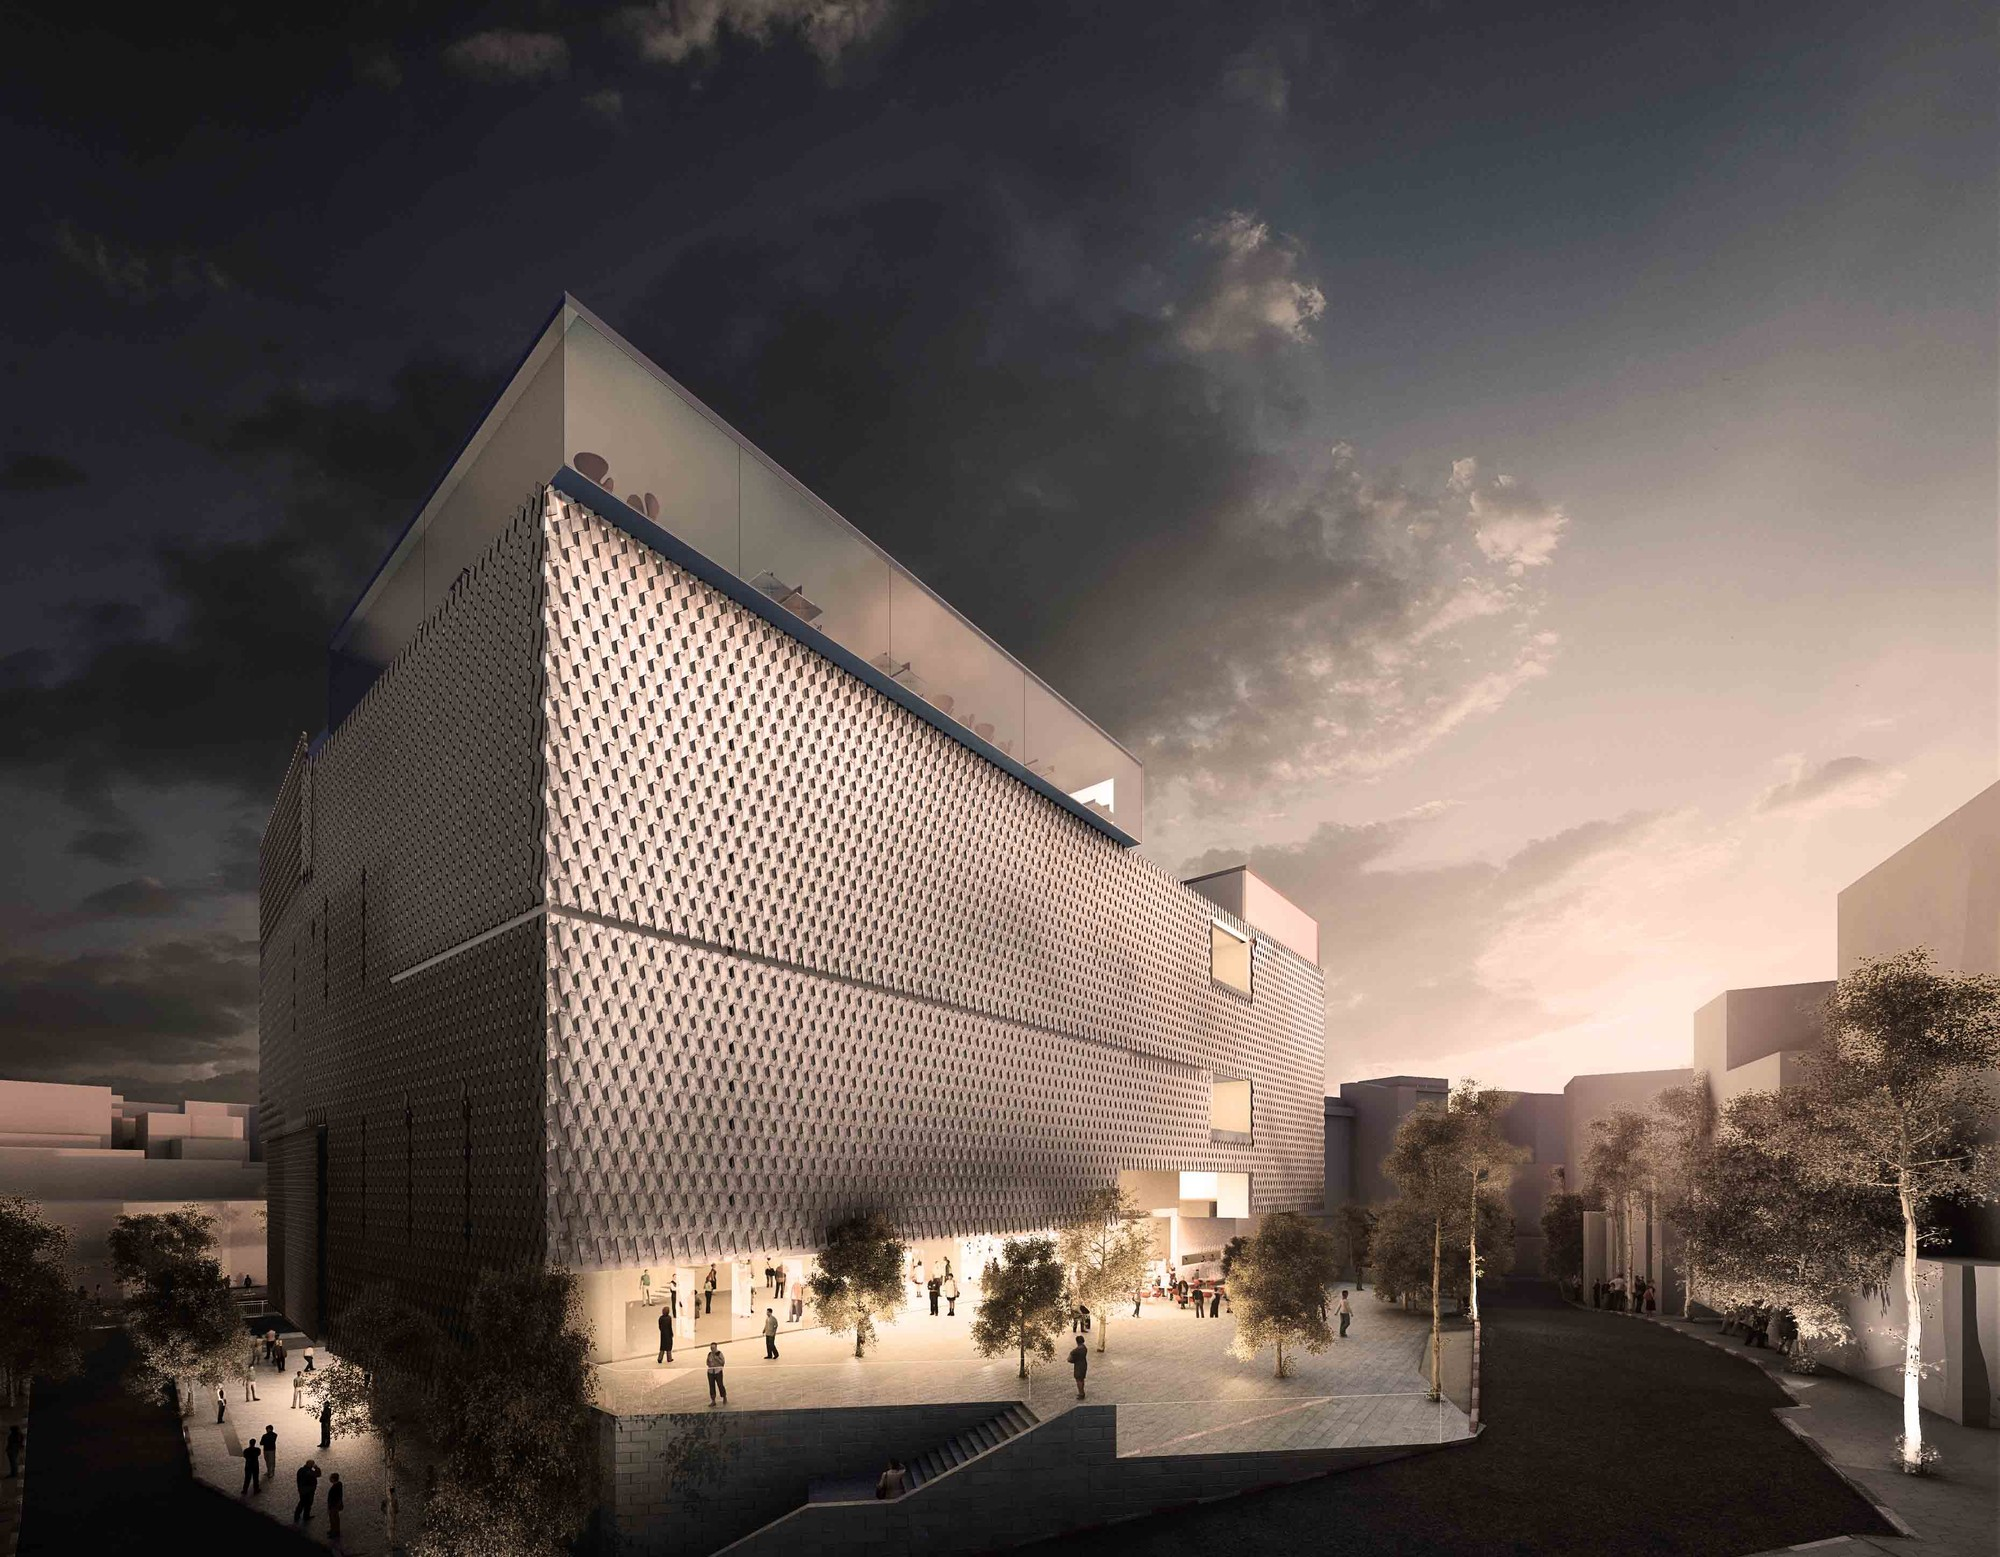 Koç Contemporary Art Museum Winning Proposal / Grimshaw, Courtesy of Grimshaw Architects